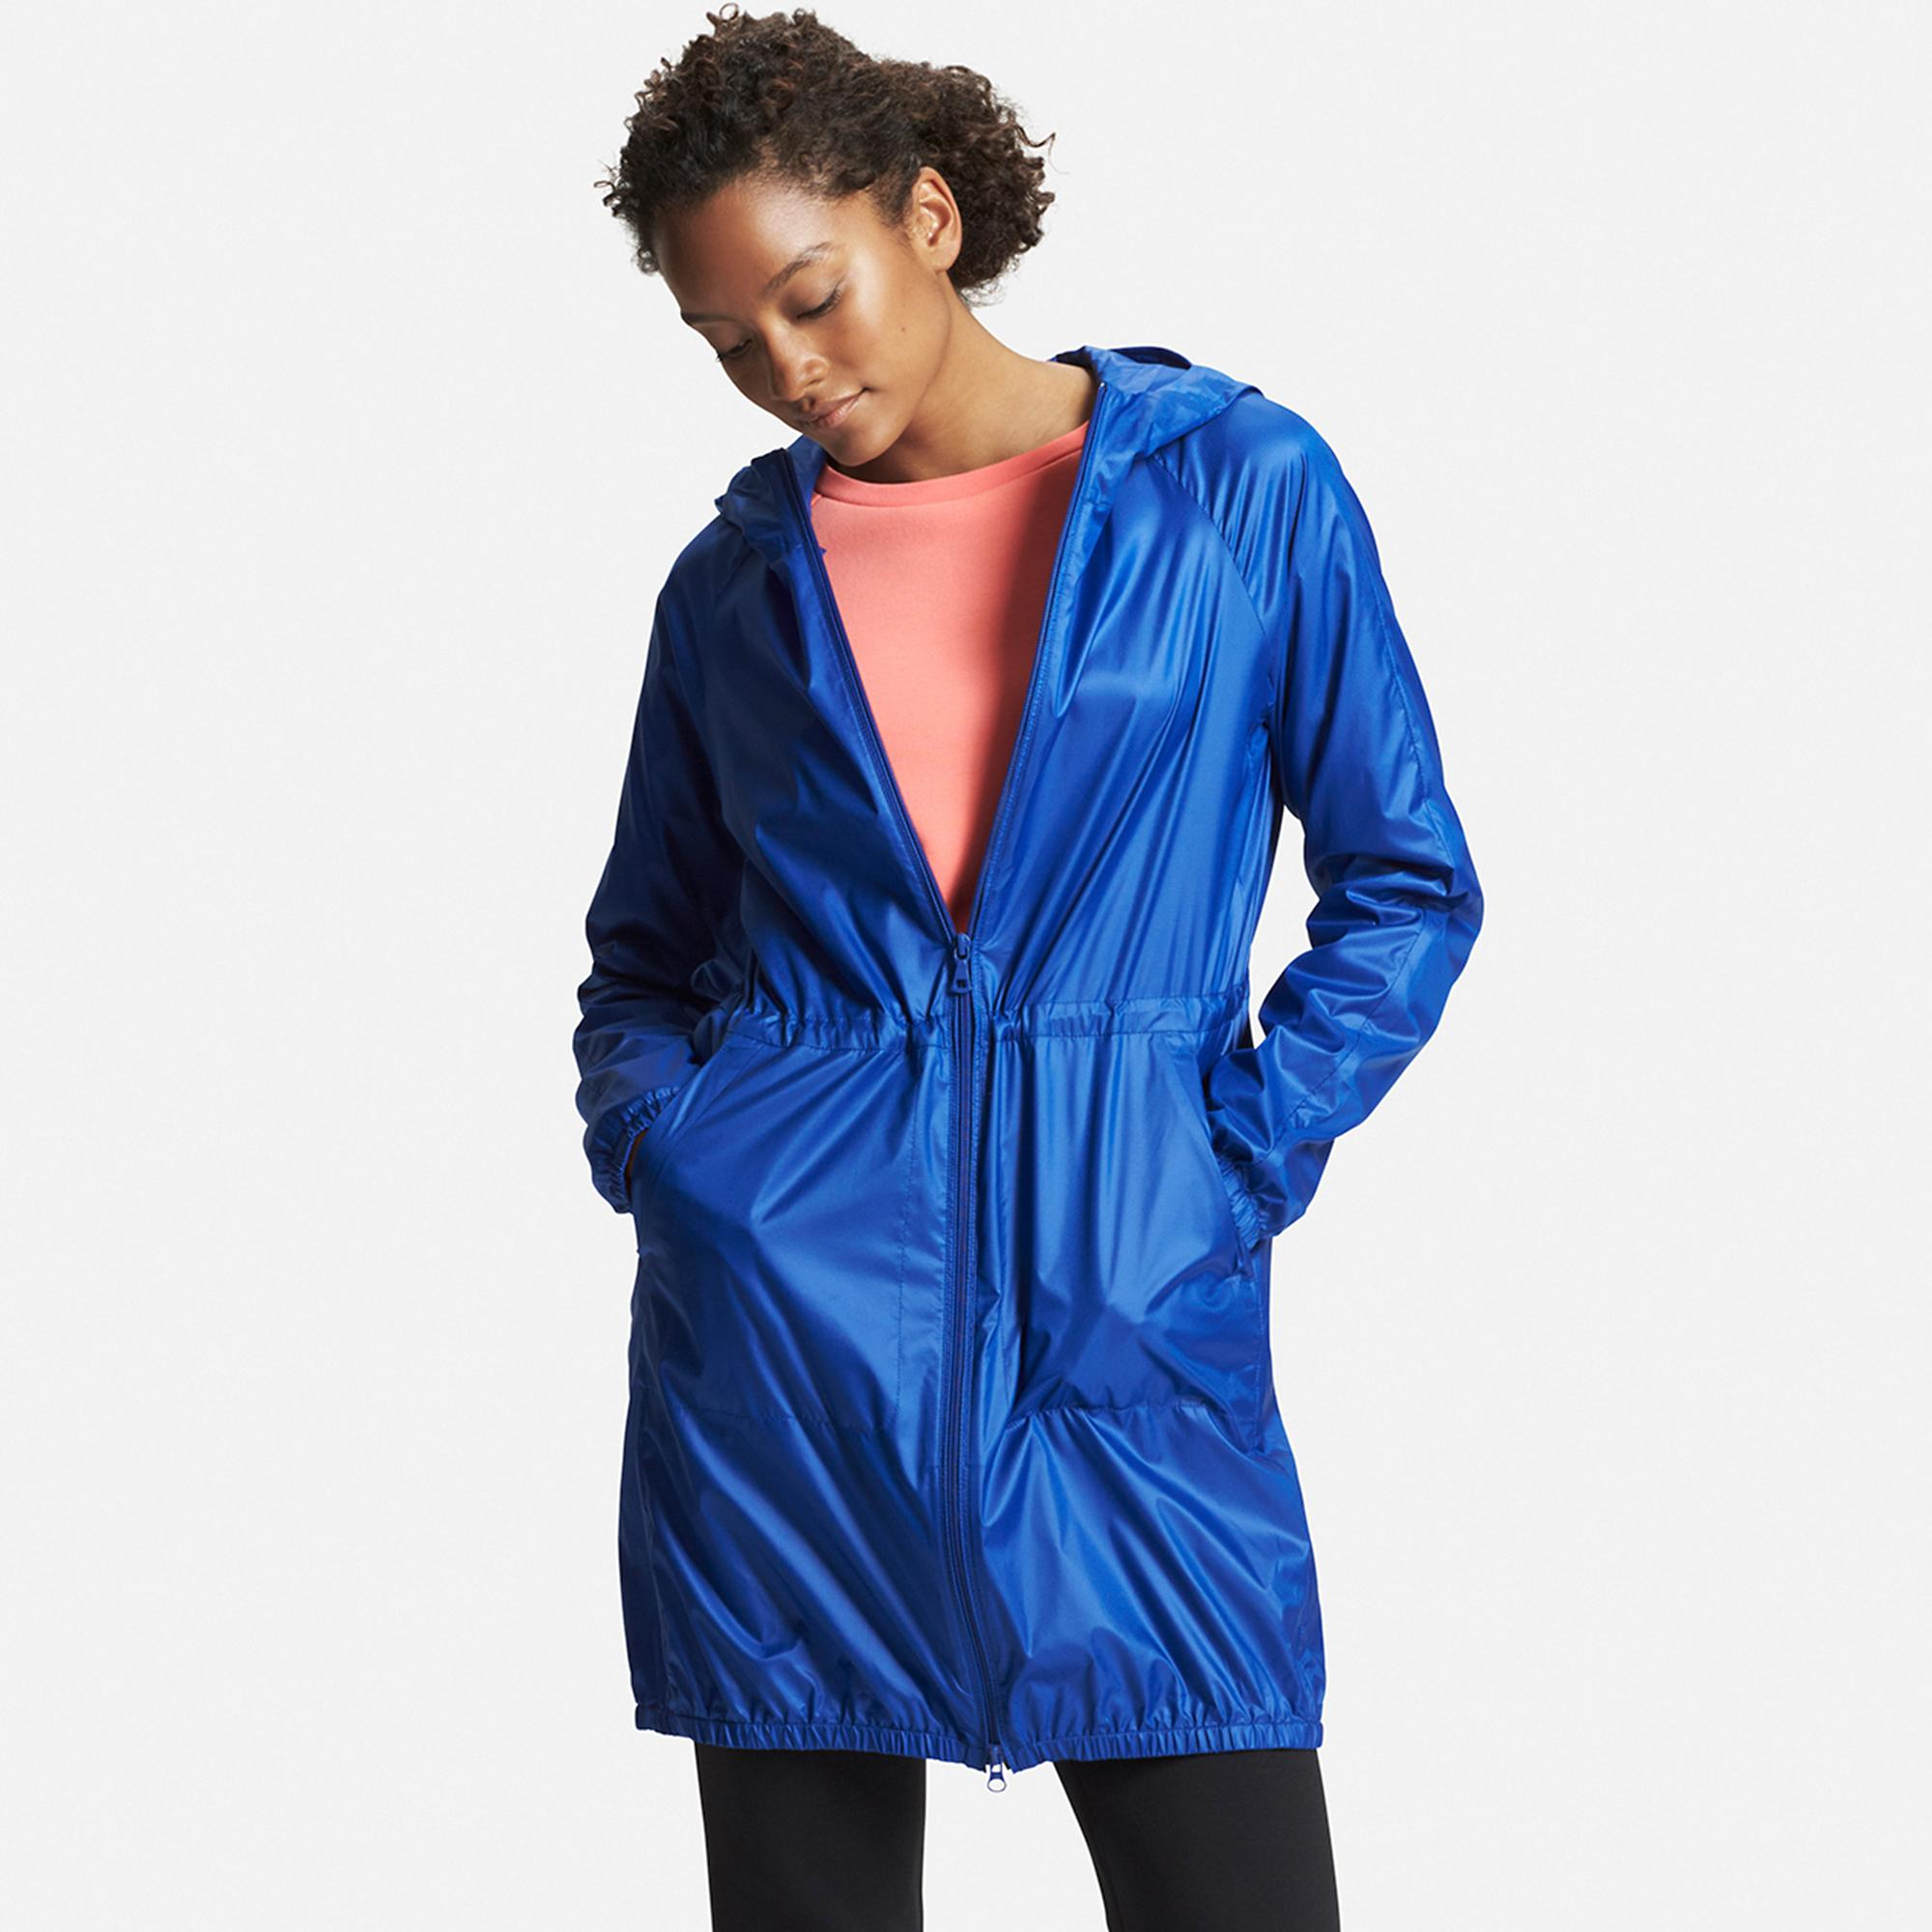 uniqlo blue raincoat with pockets